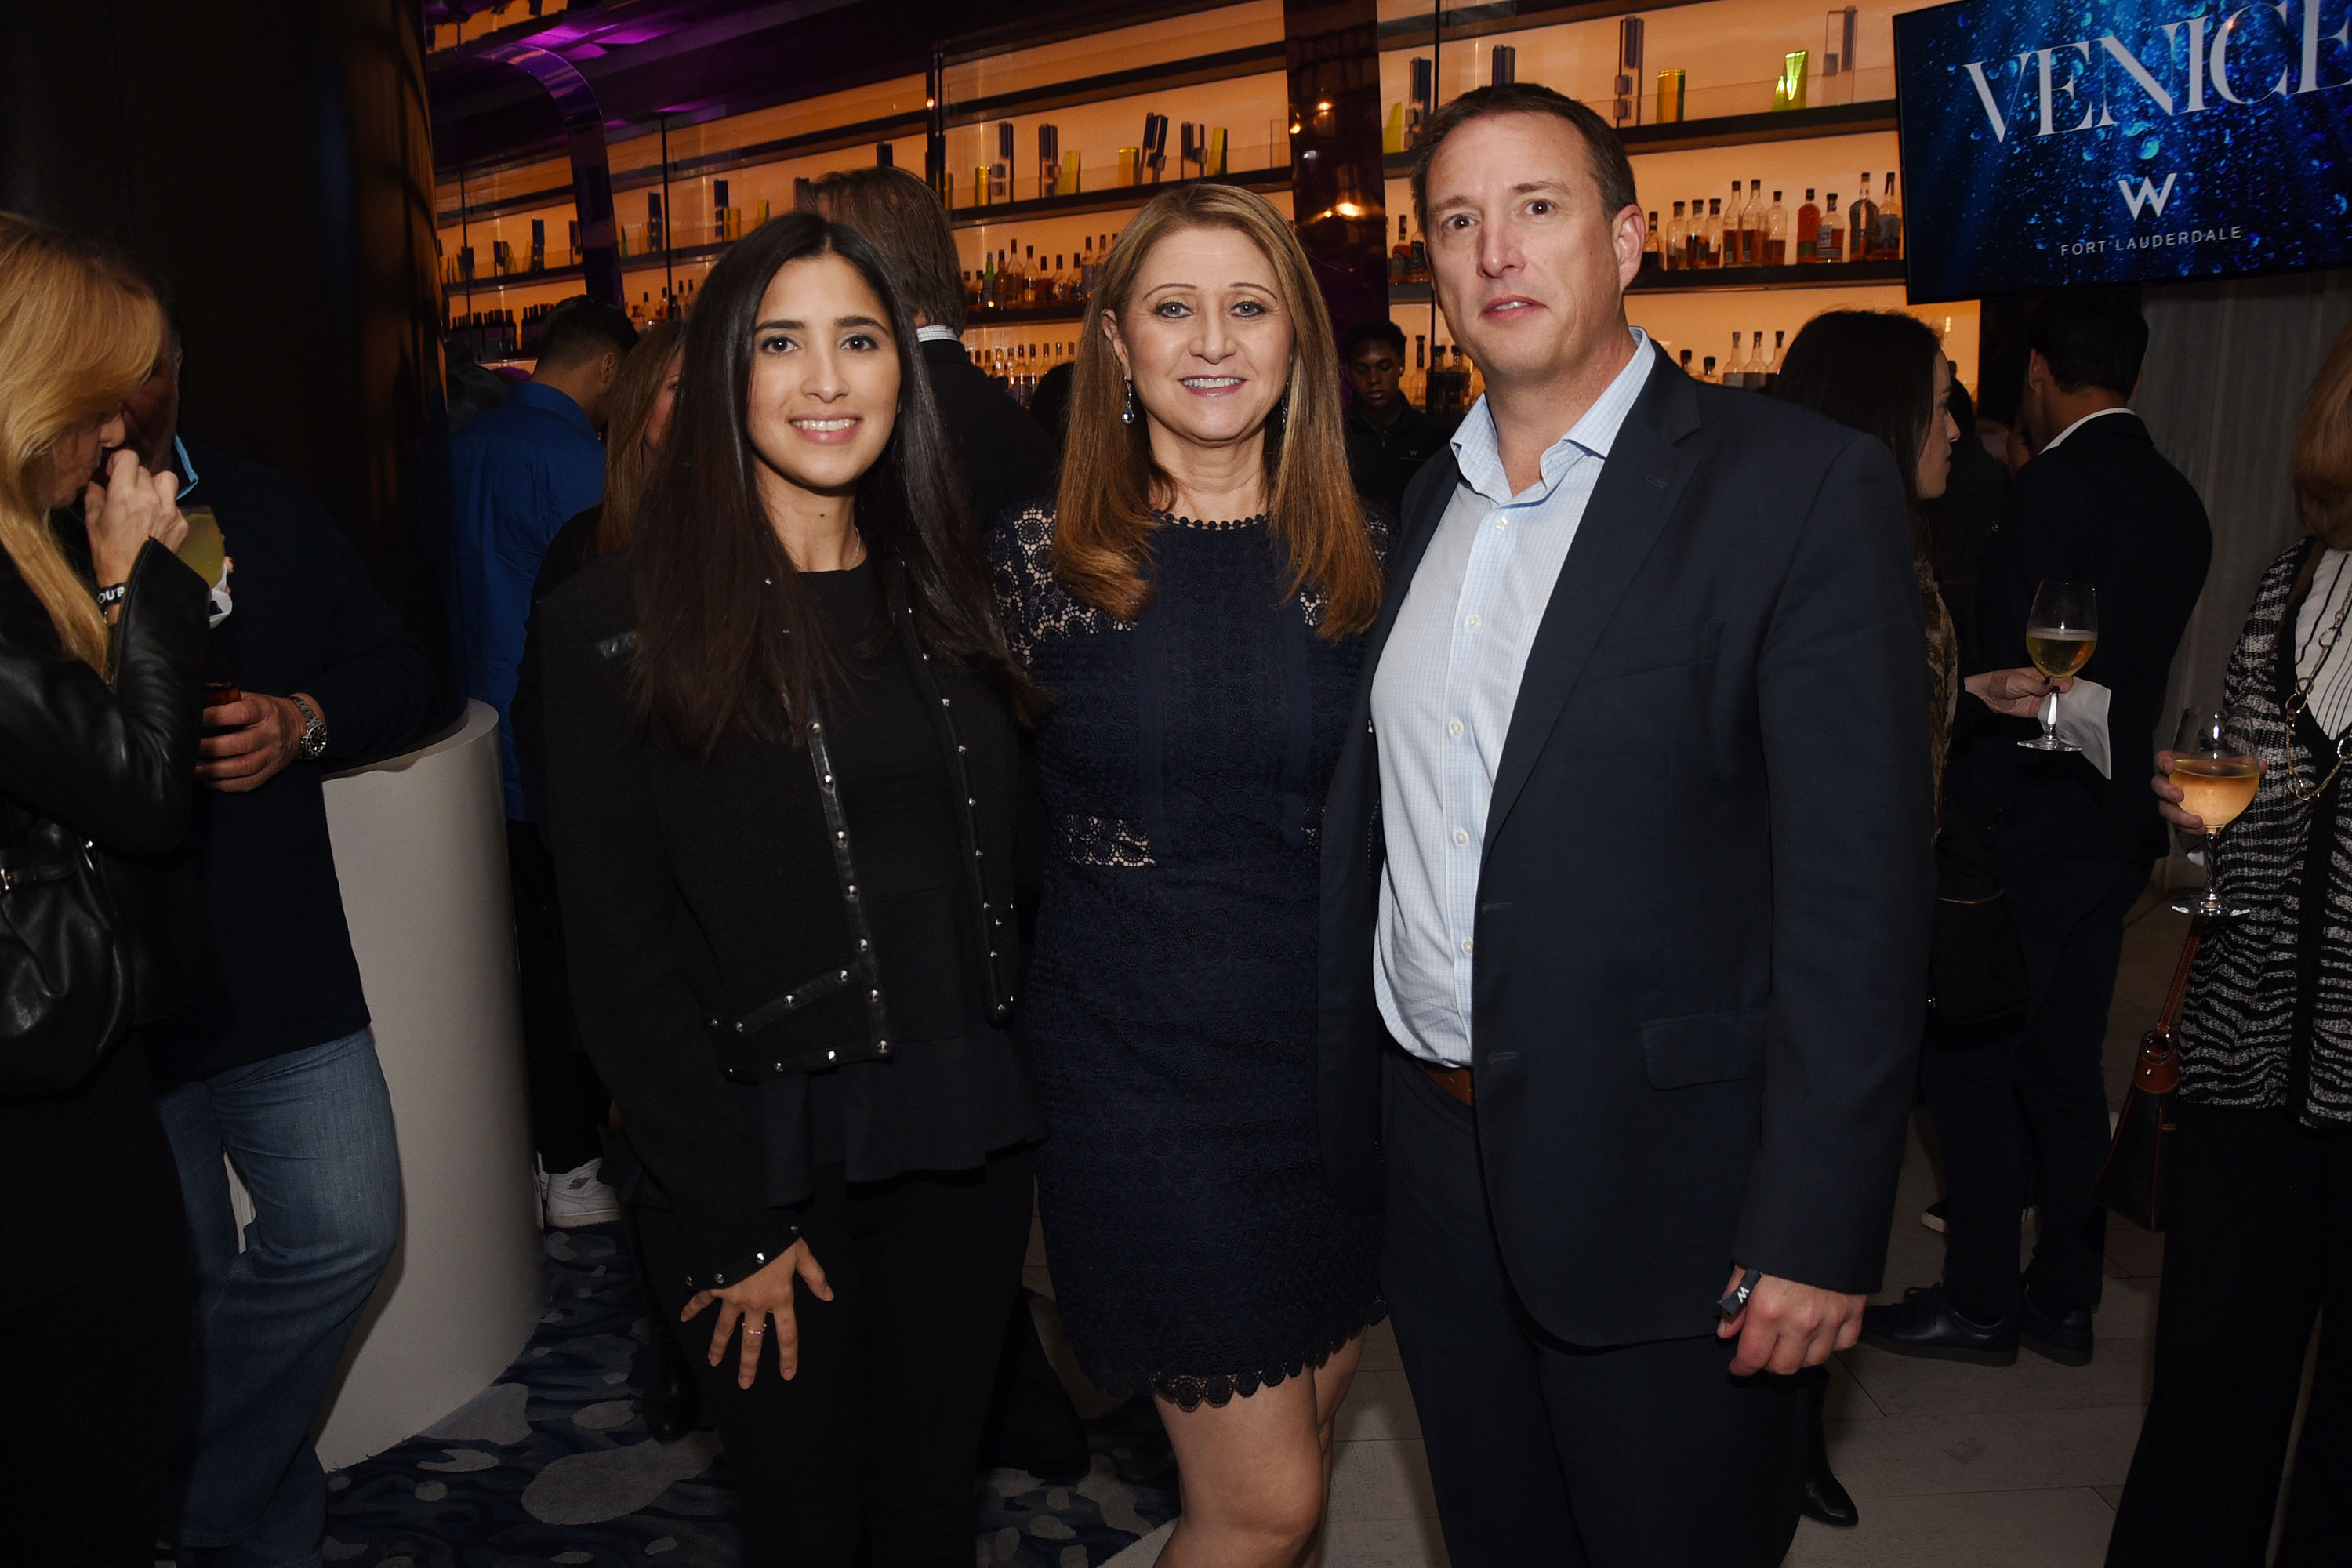 Ed Morse Cadillac >> Winter Chic: Winter Issue Cover Party at the W Fort ...